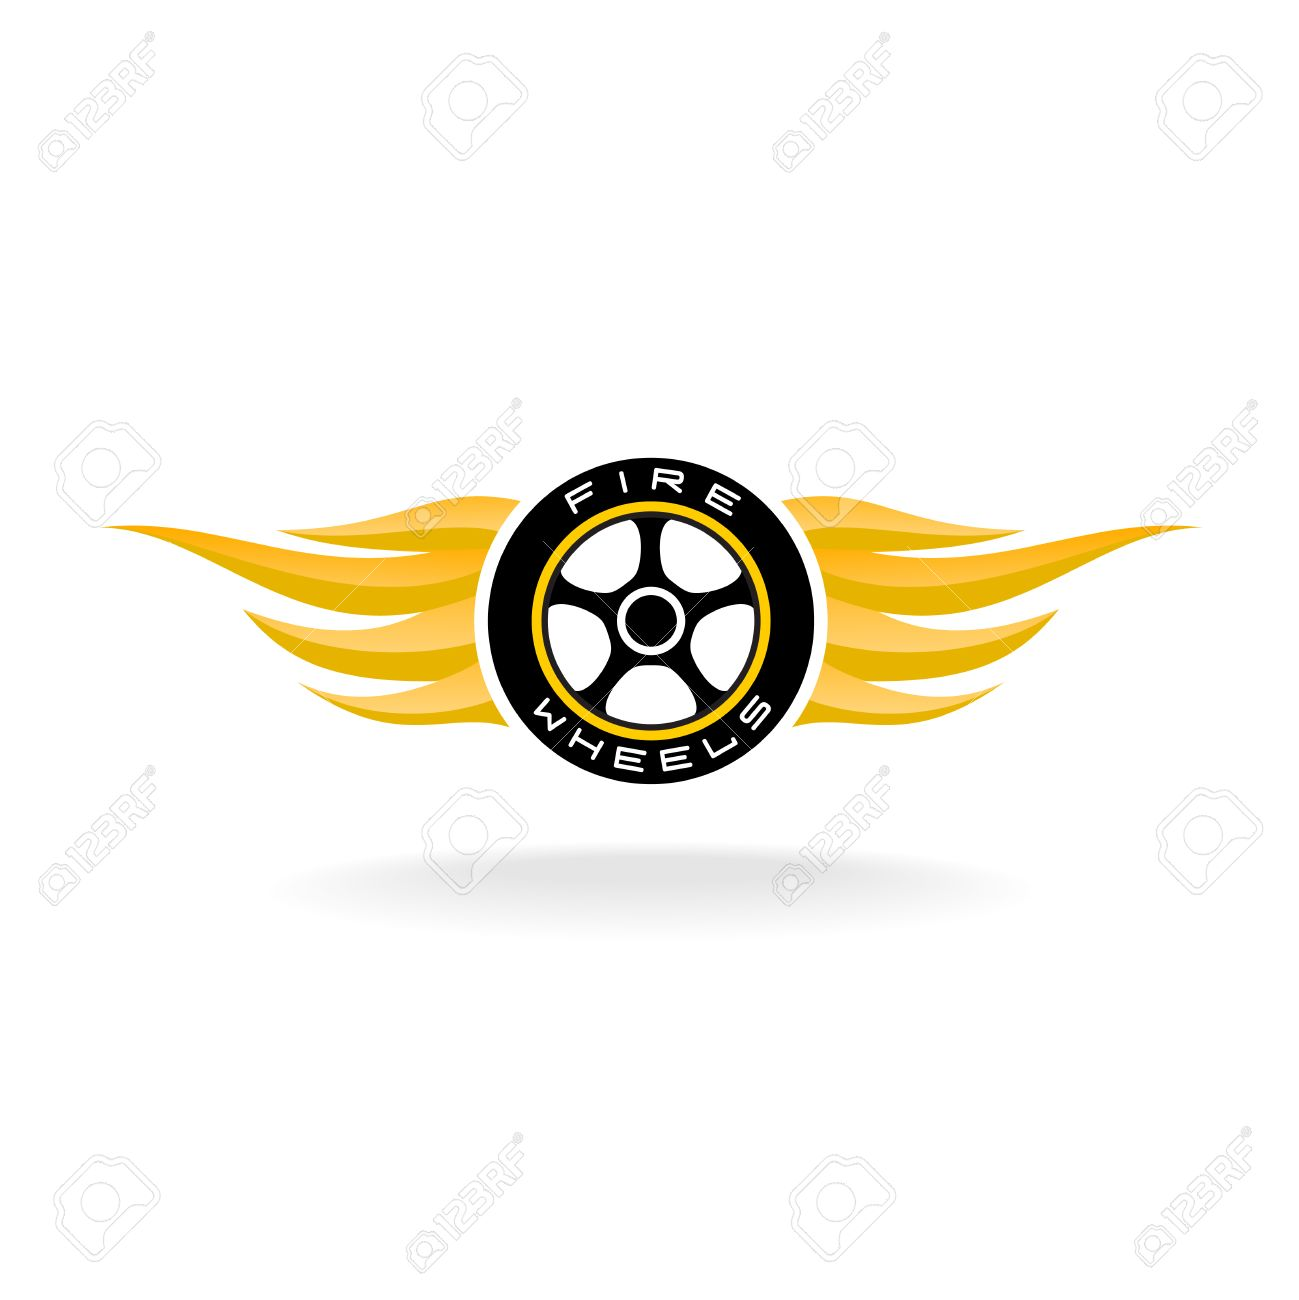 Auto car whell with fire wings icon royalty free cliparts vectors auto car whell with fire wings icon stock vector 43565335 biocorpaavc Choice Image